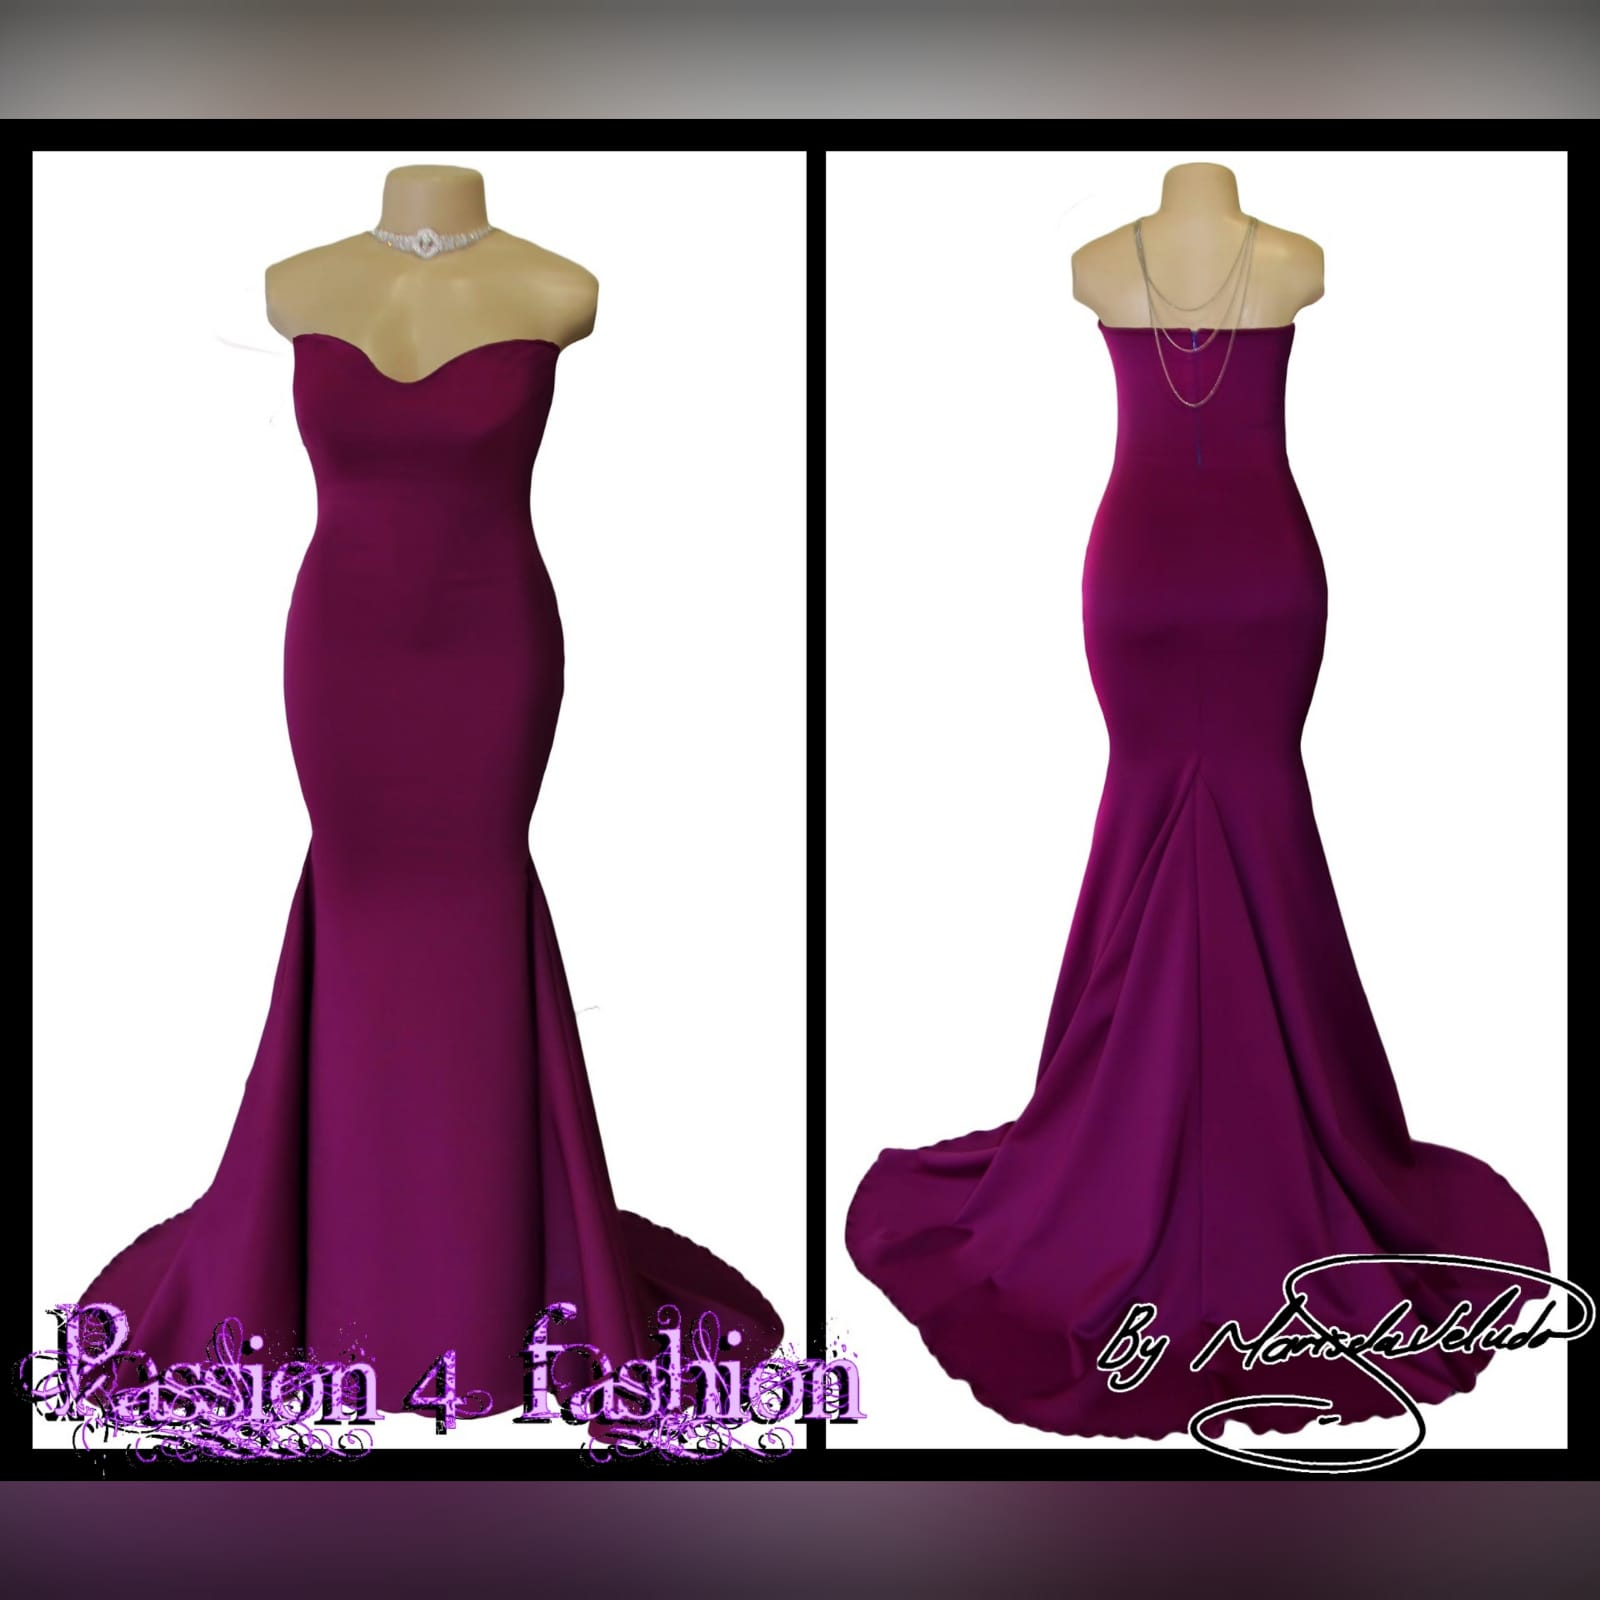 Fuschia soft mermaid tube evening dress 3 fuschia soft mermaid tube evening dress.   with a sweetheart neckline, straight back and a train. Excludes accessory.